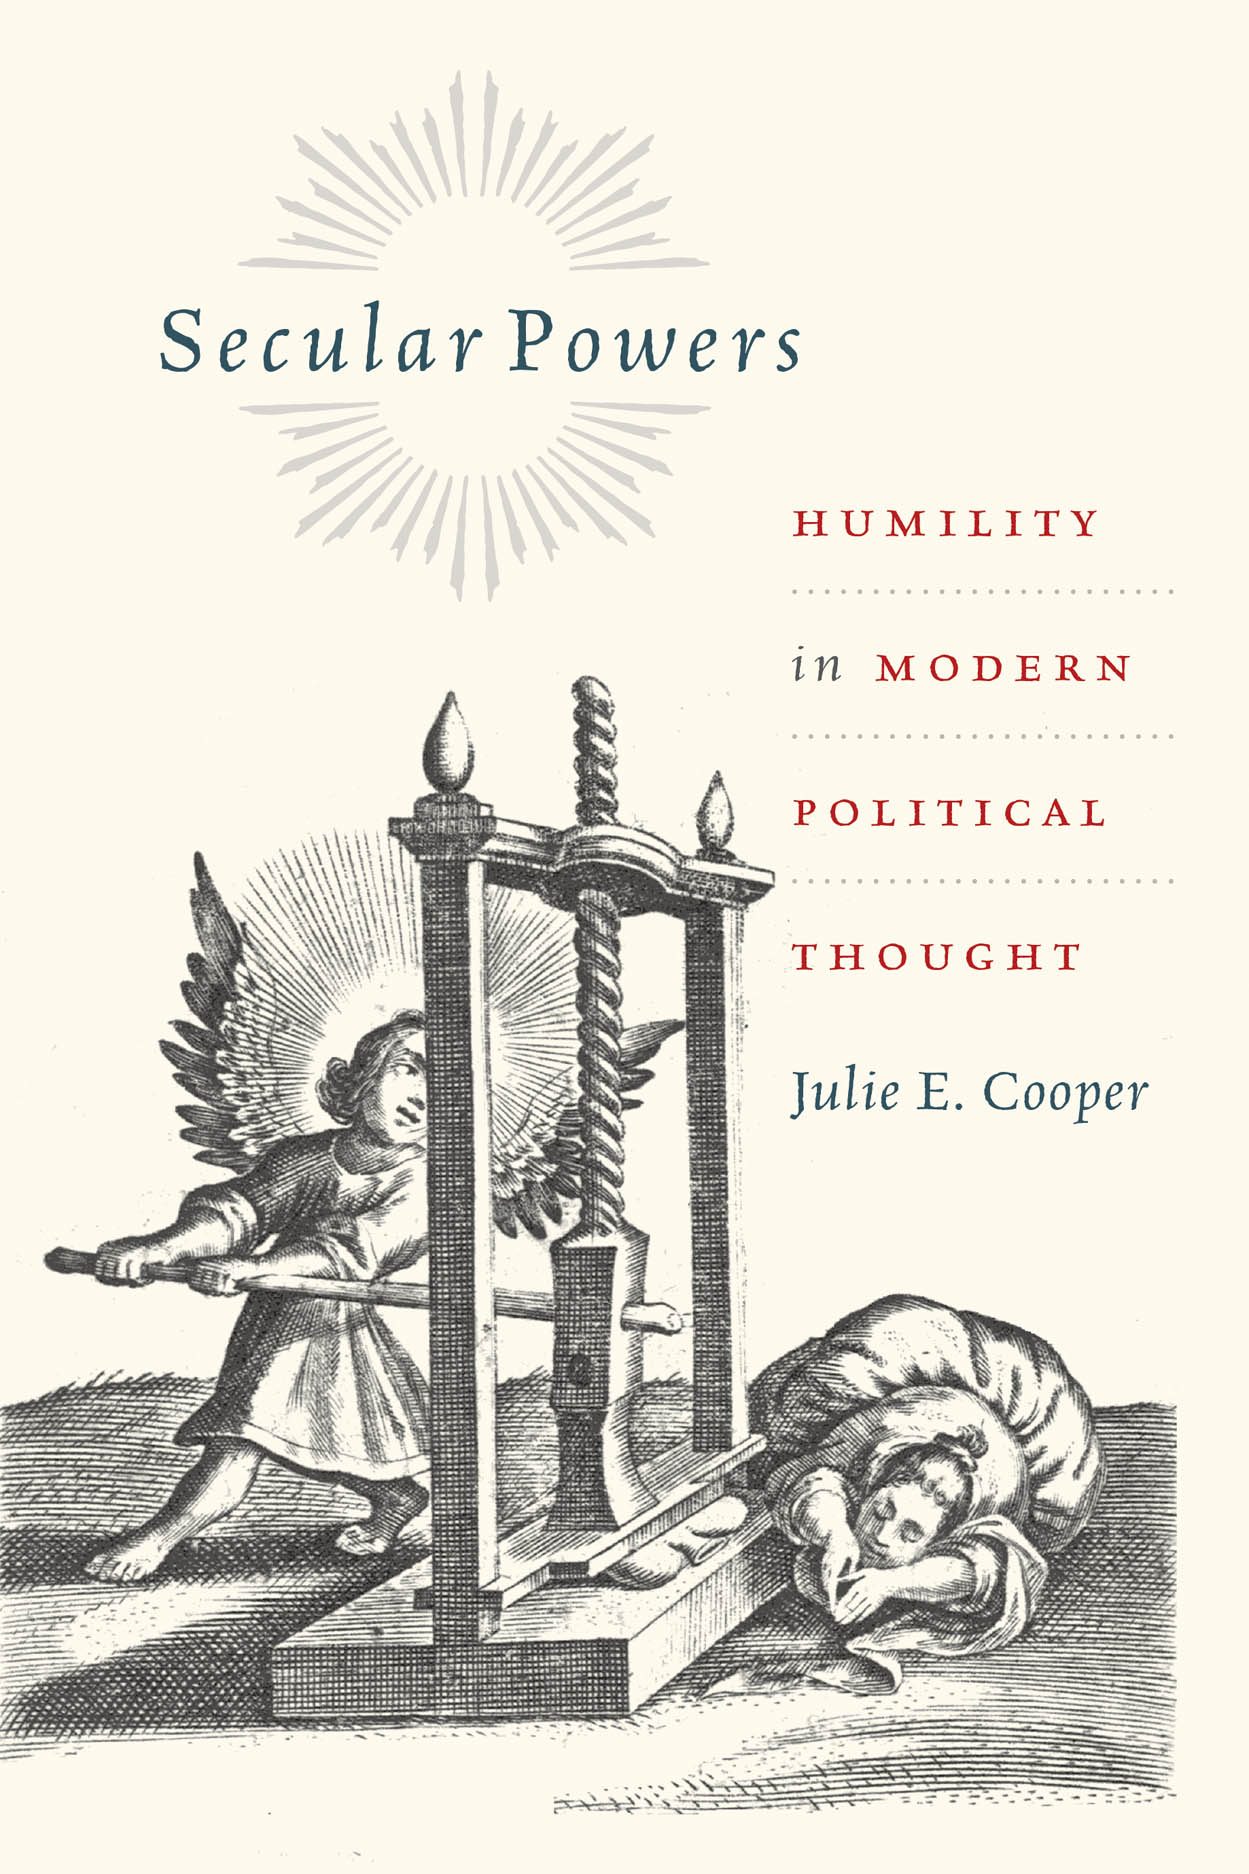 Secular Powers: Humility in Modern Political Thought